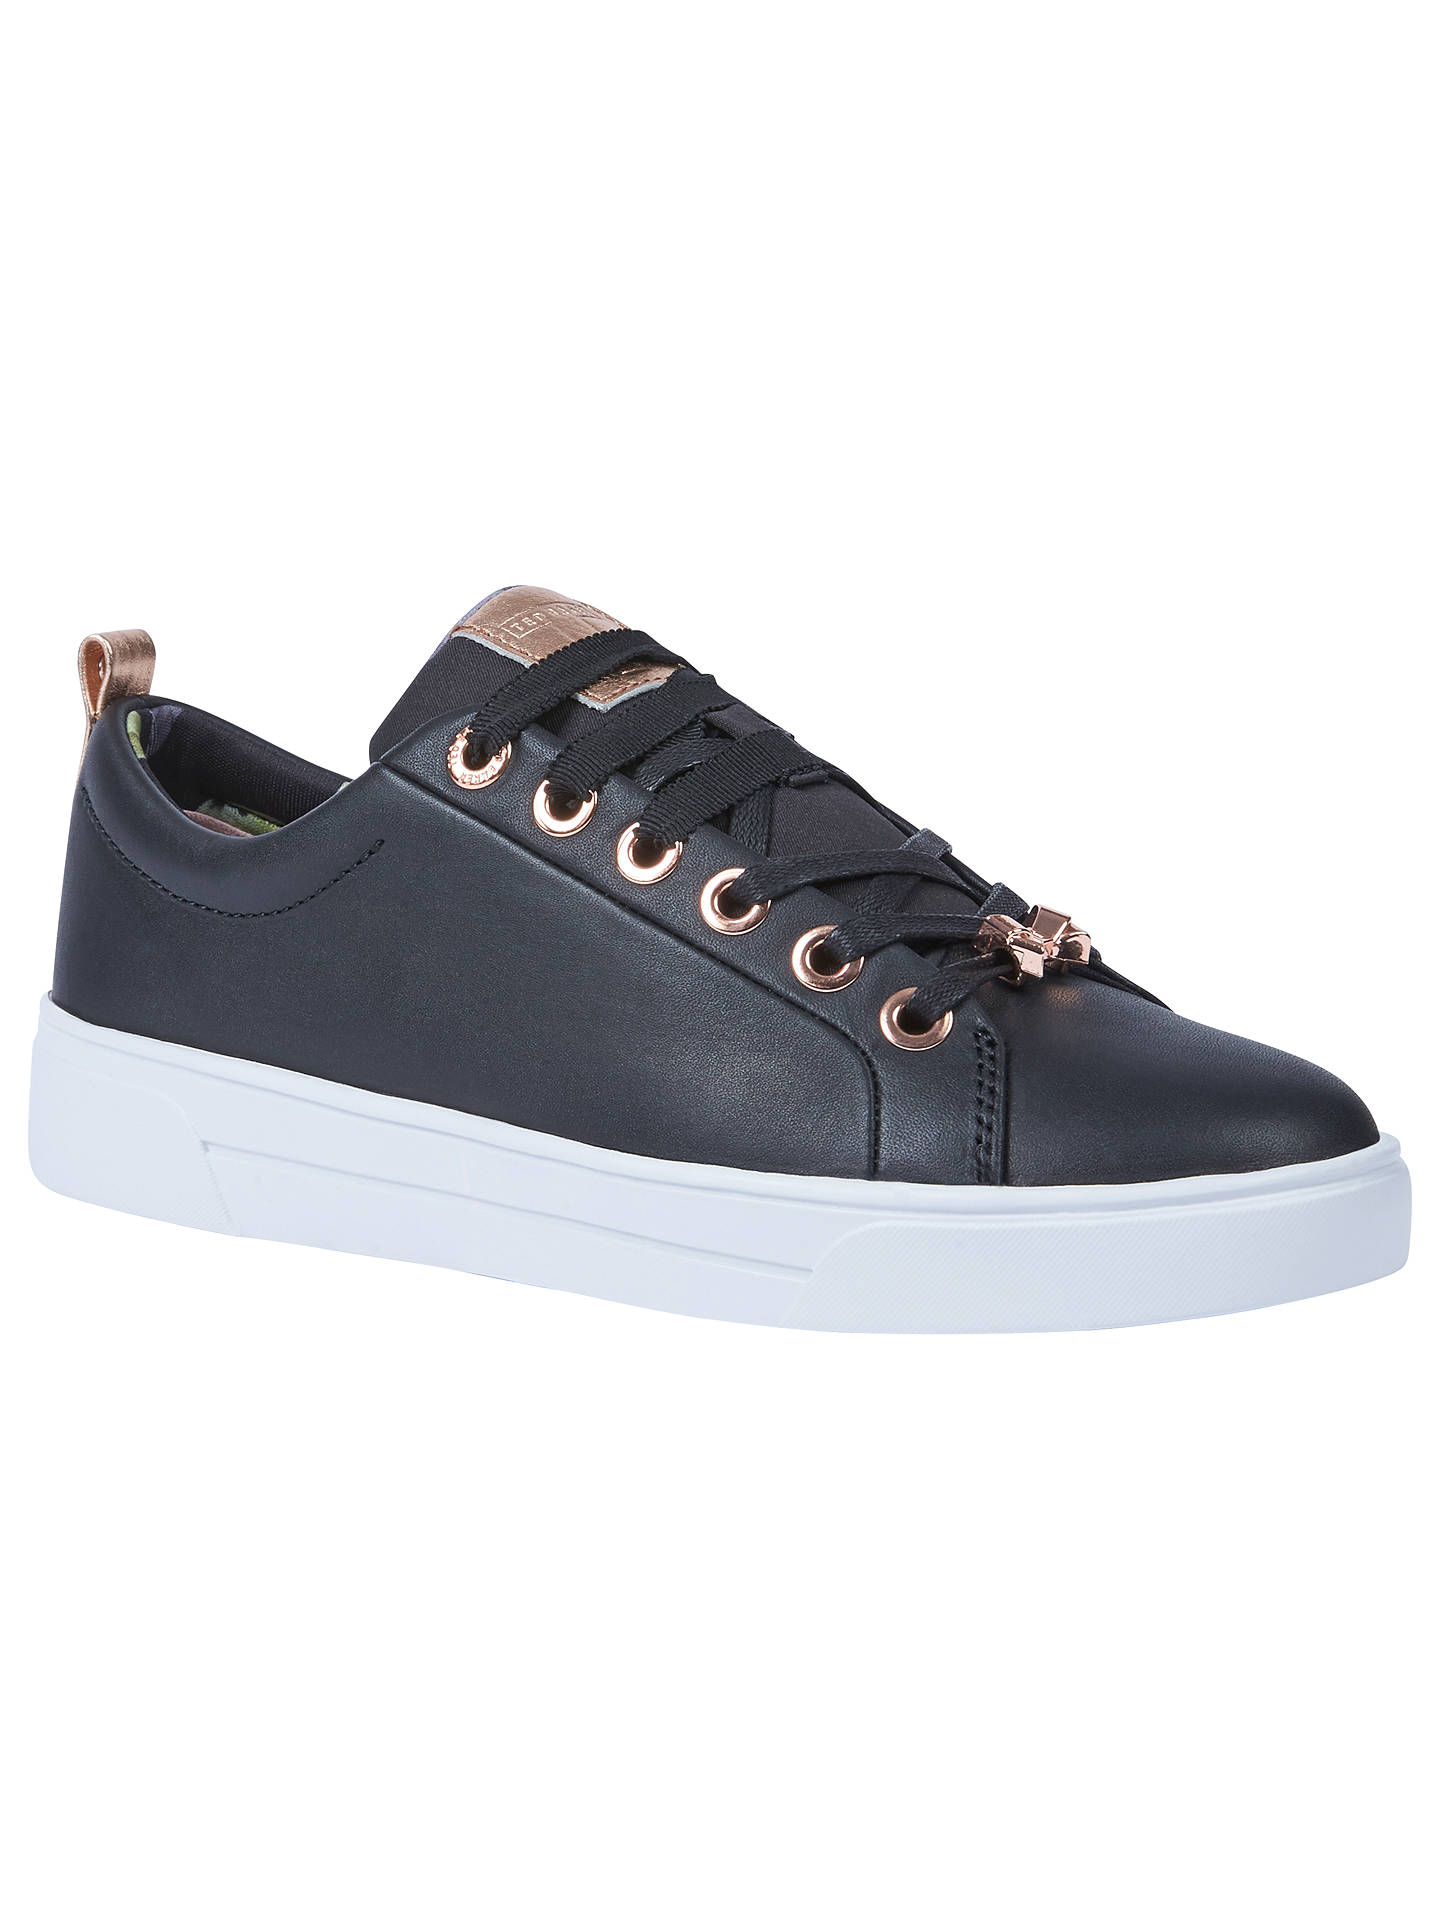 9d5a454b2e4b98 Ted Baker Kellei Low Top Trainers at John Lewis   Partners